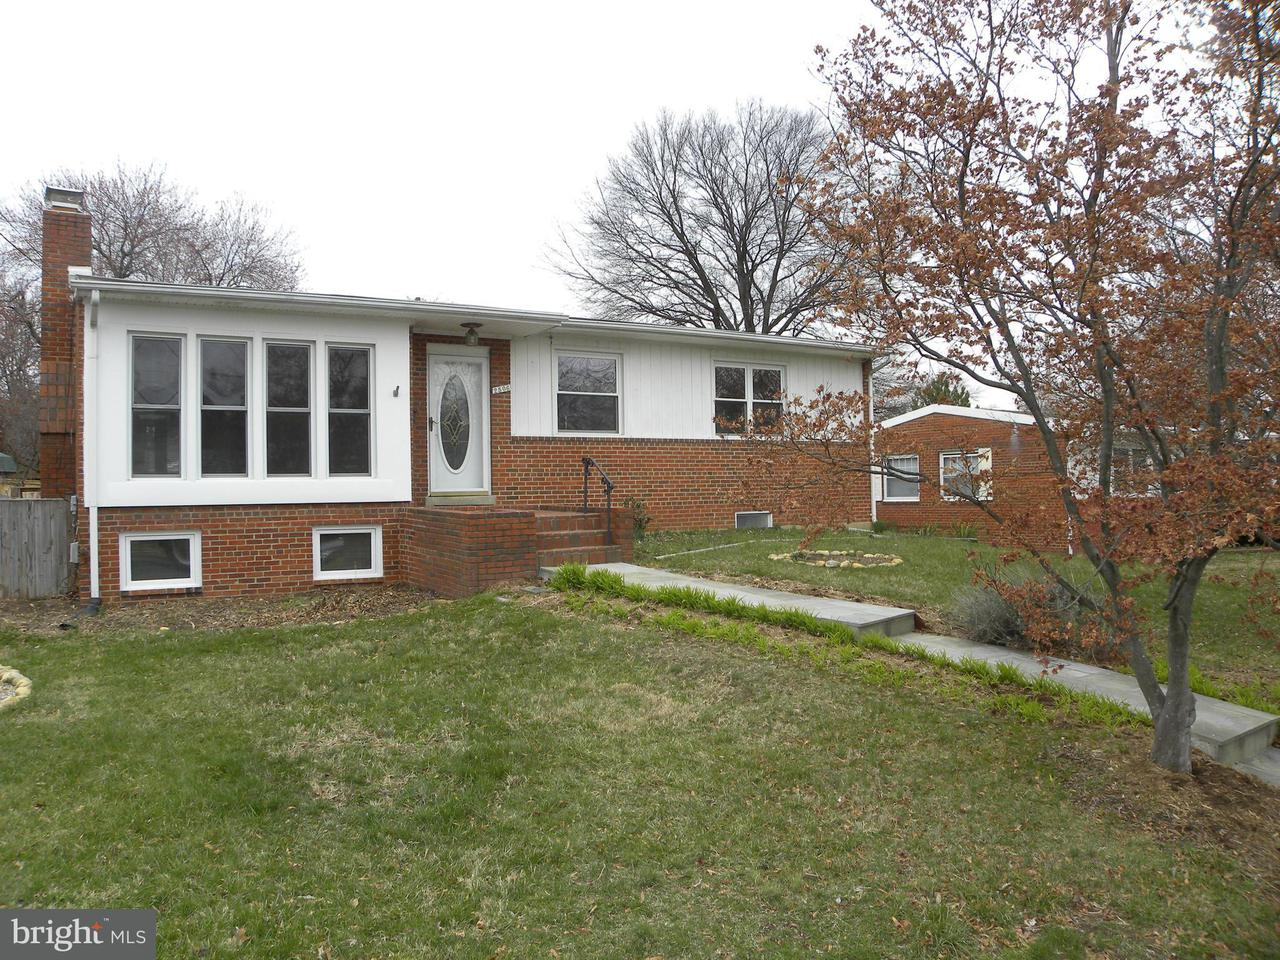 Other Residential for Rent at 2506 Crest St Alexandria, Virginia 22302 United States